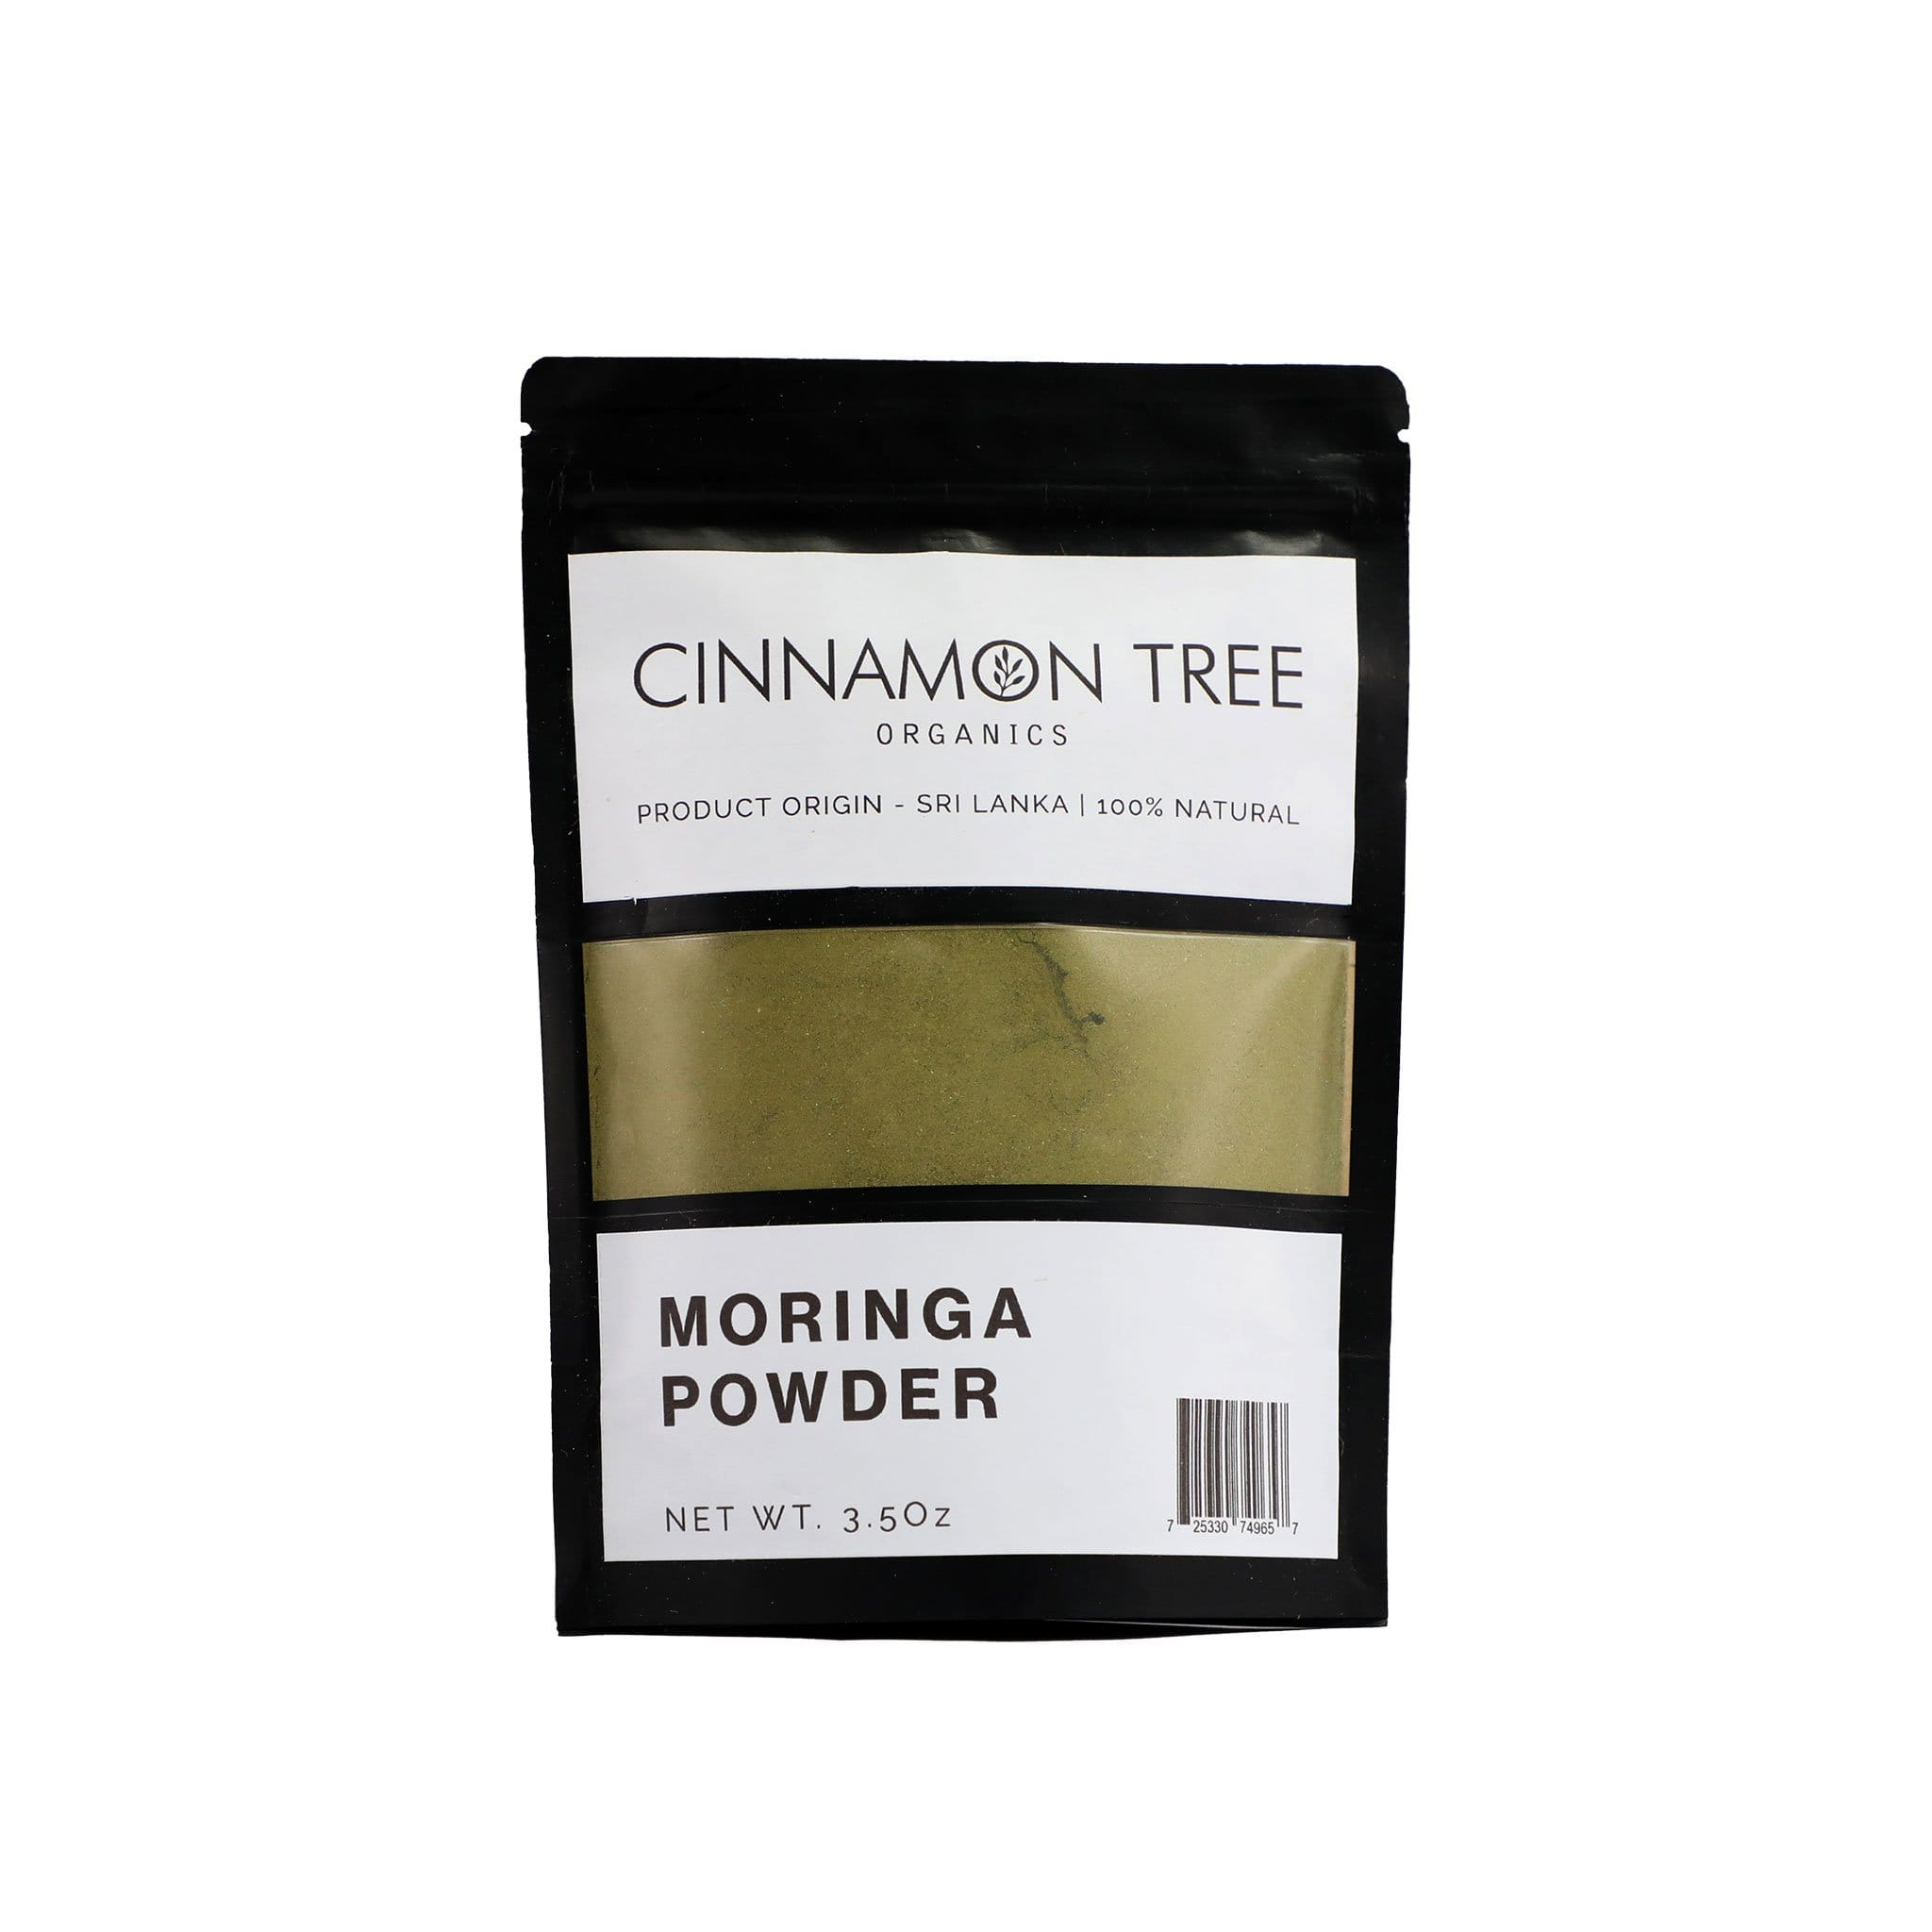 Cinnamon Tree Organics single origin moringa 3.5 Oz